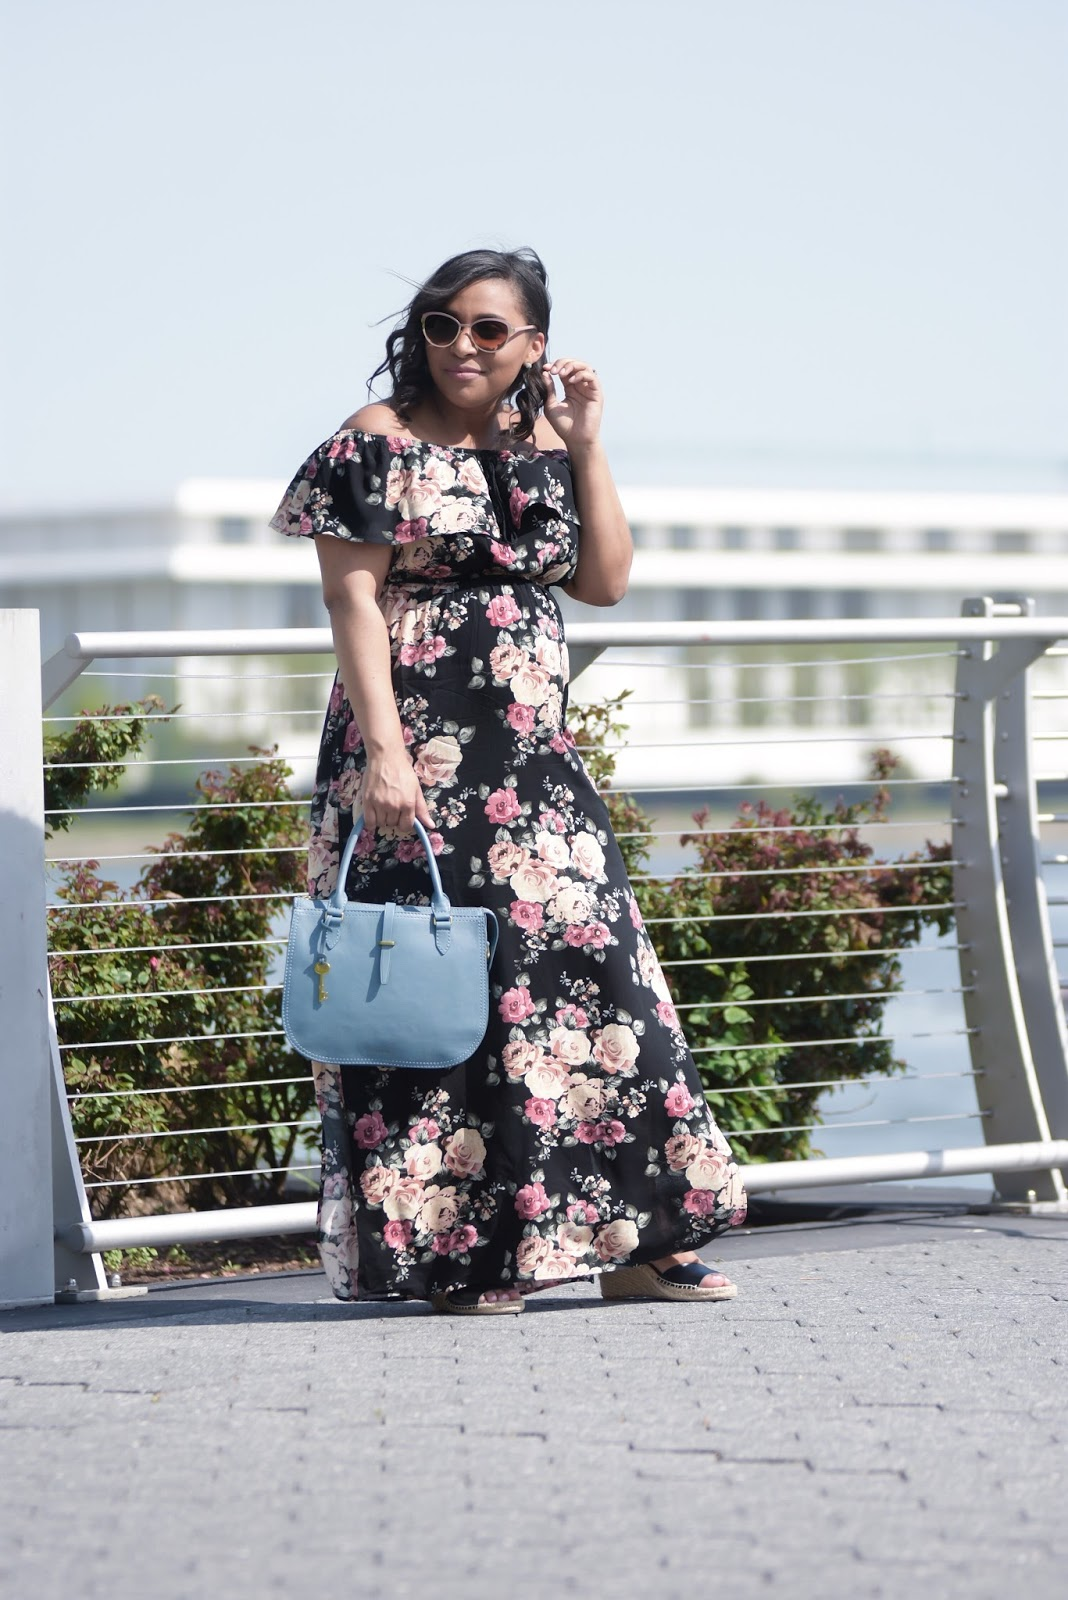 Mom blogger, maternity style, floral dress, spring dress, pregnant fashion, third trimester, 28 weeks pregnant, maternity fashion